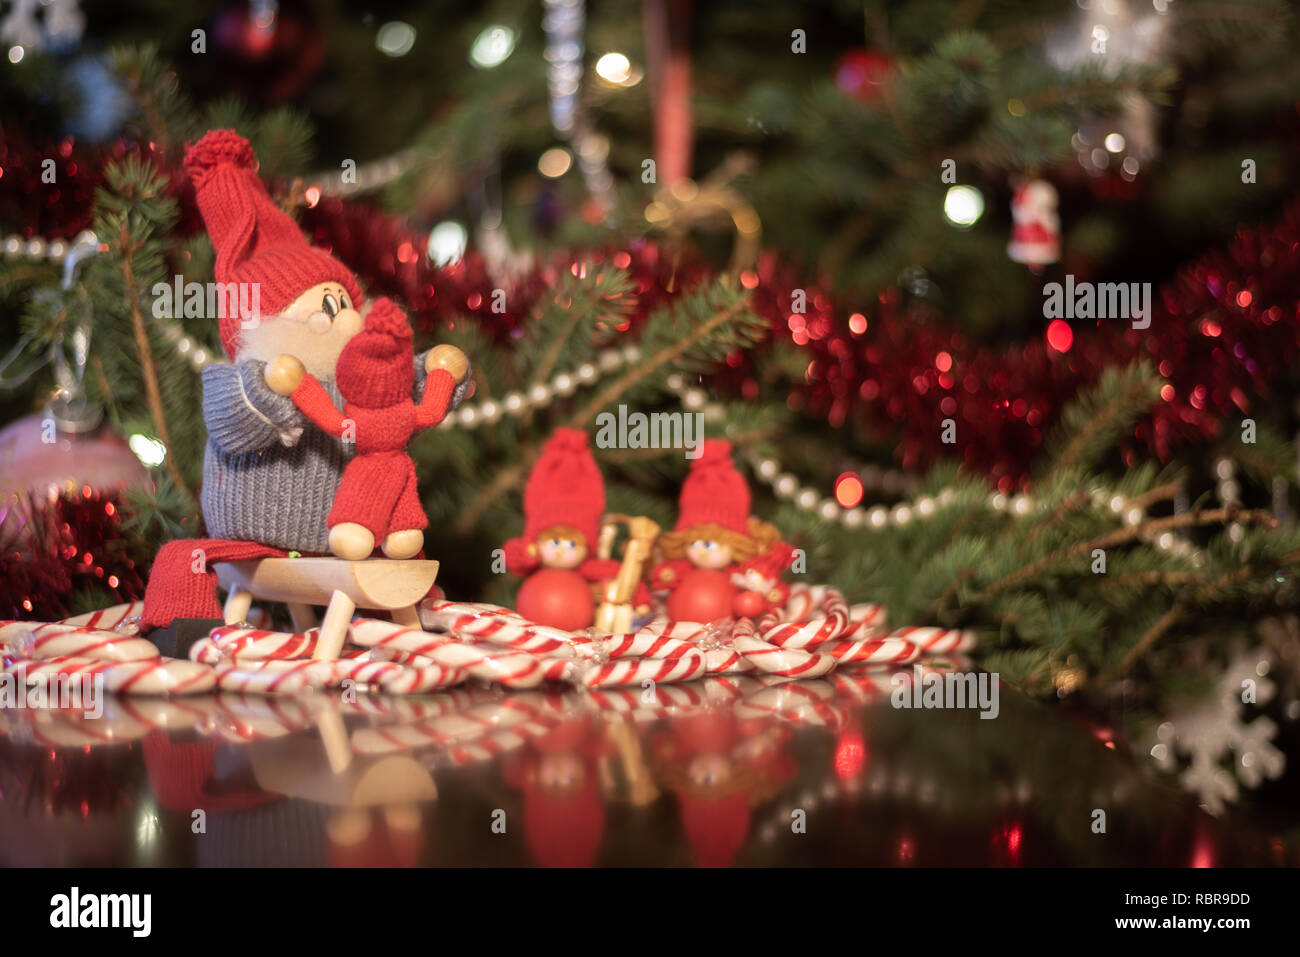 Dd Christmas.Christmas Decorations Hand Made From Europe Stock Photo